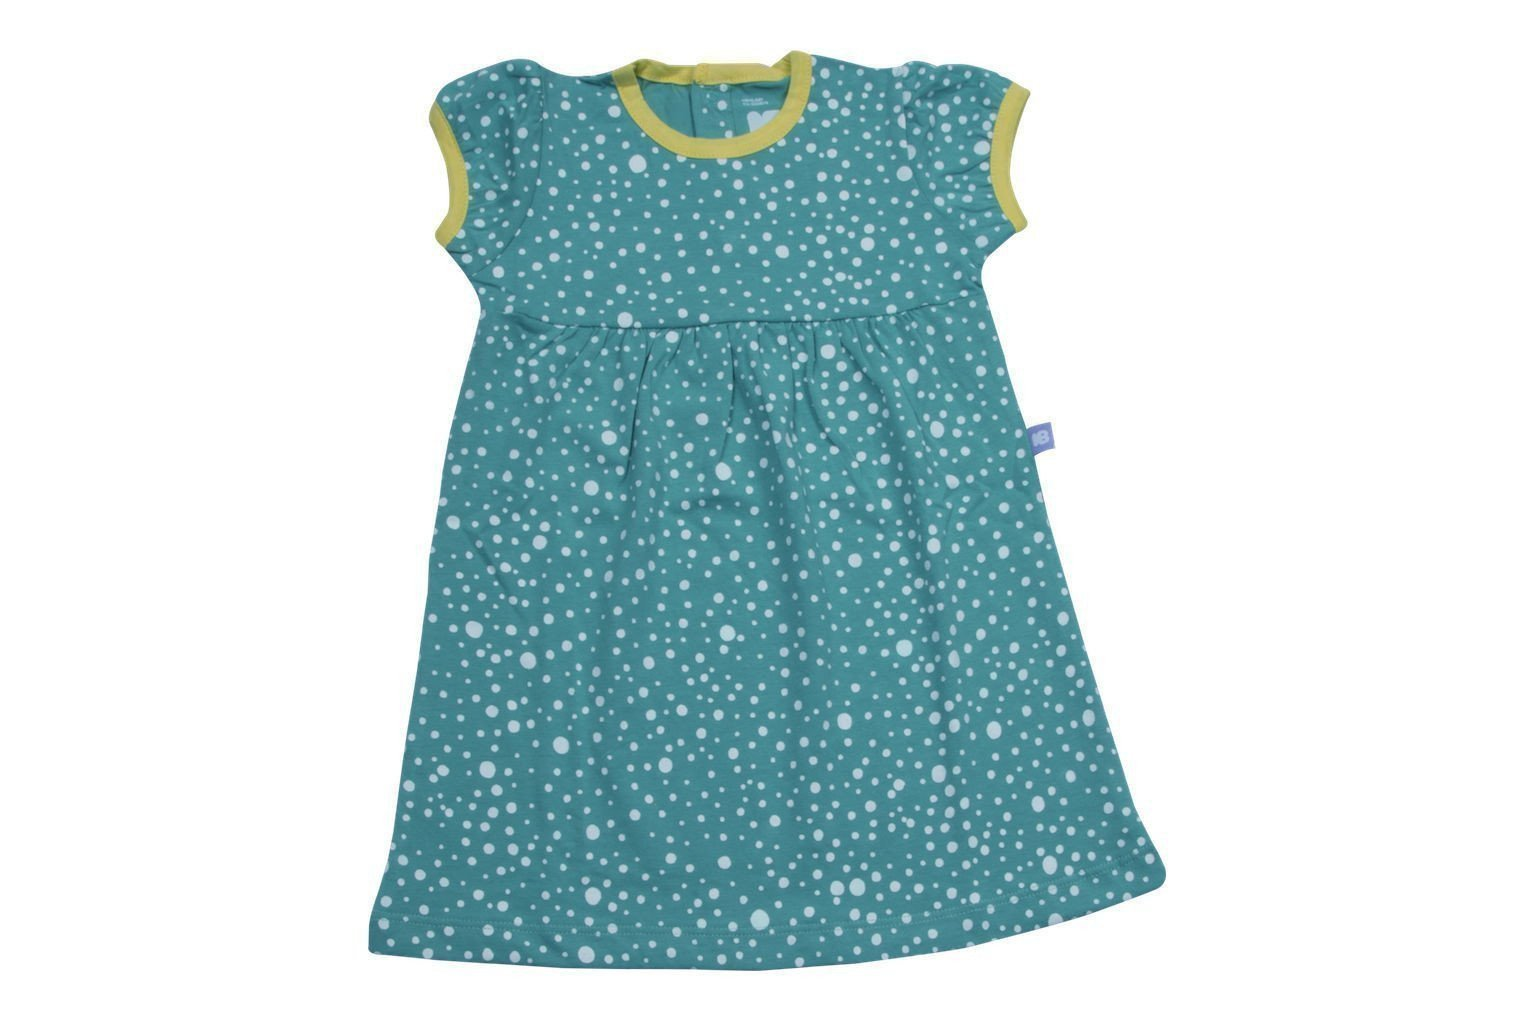 Polka Dot Print Dress - HUGABUG